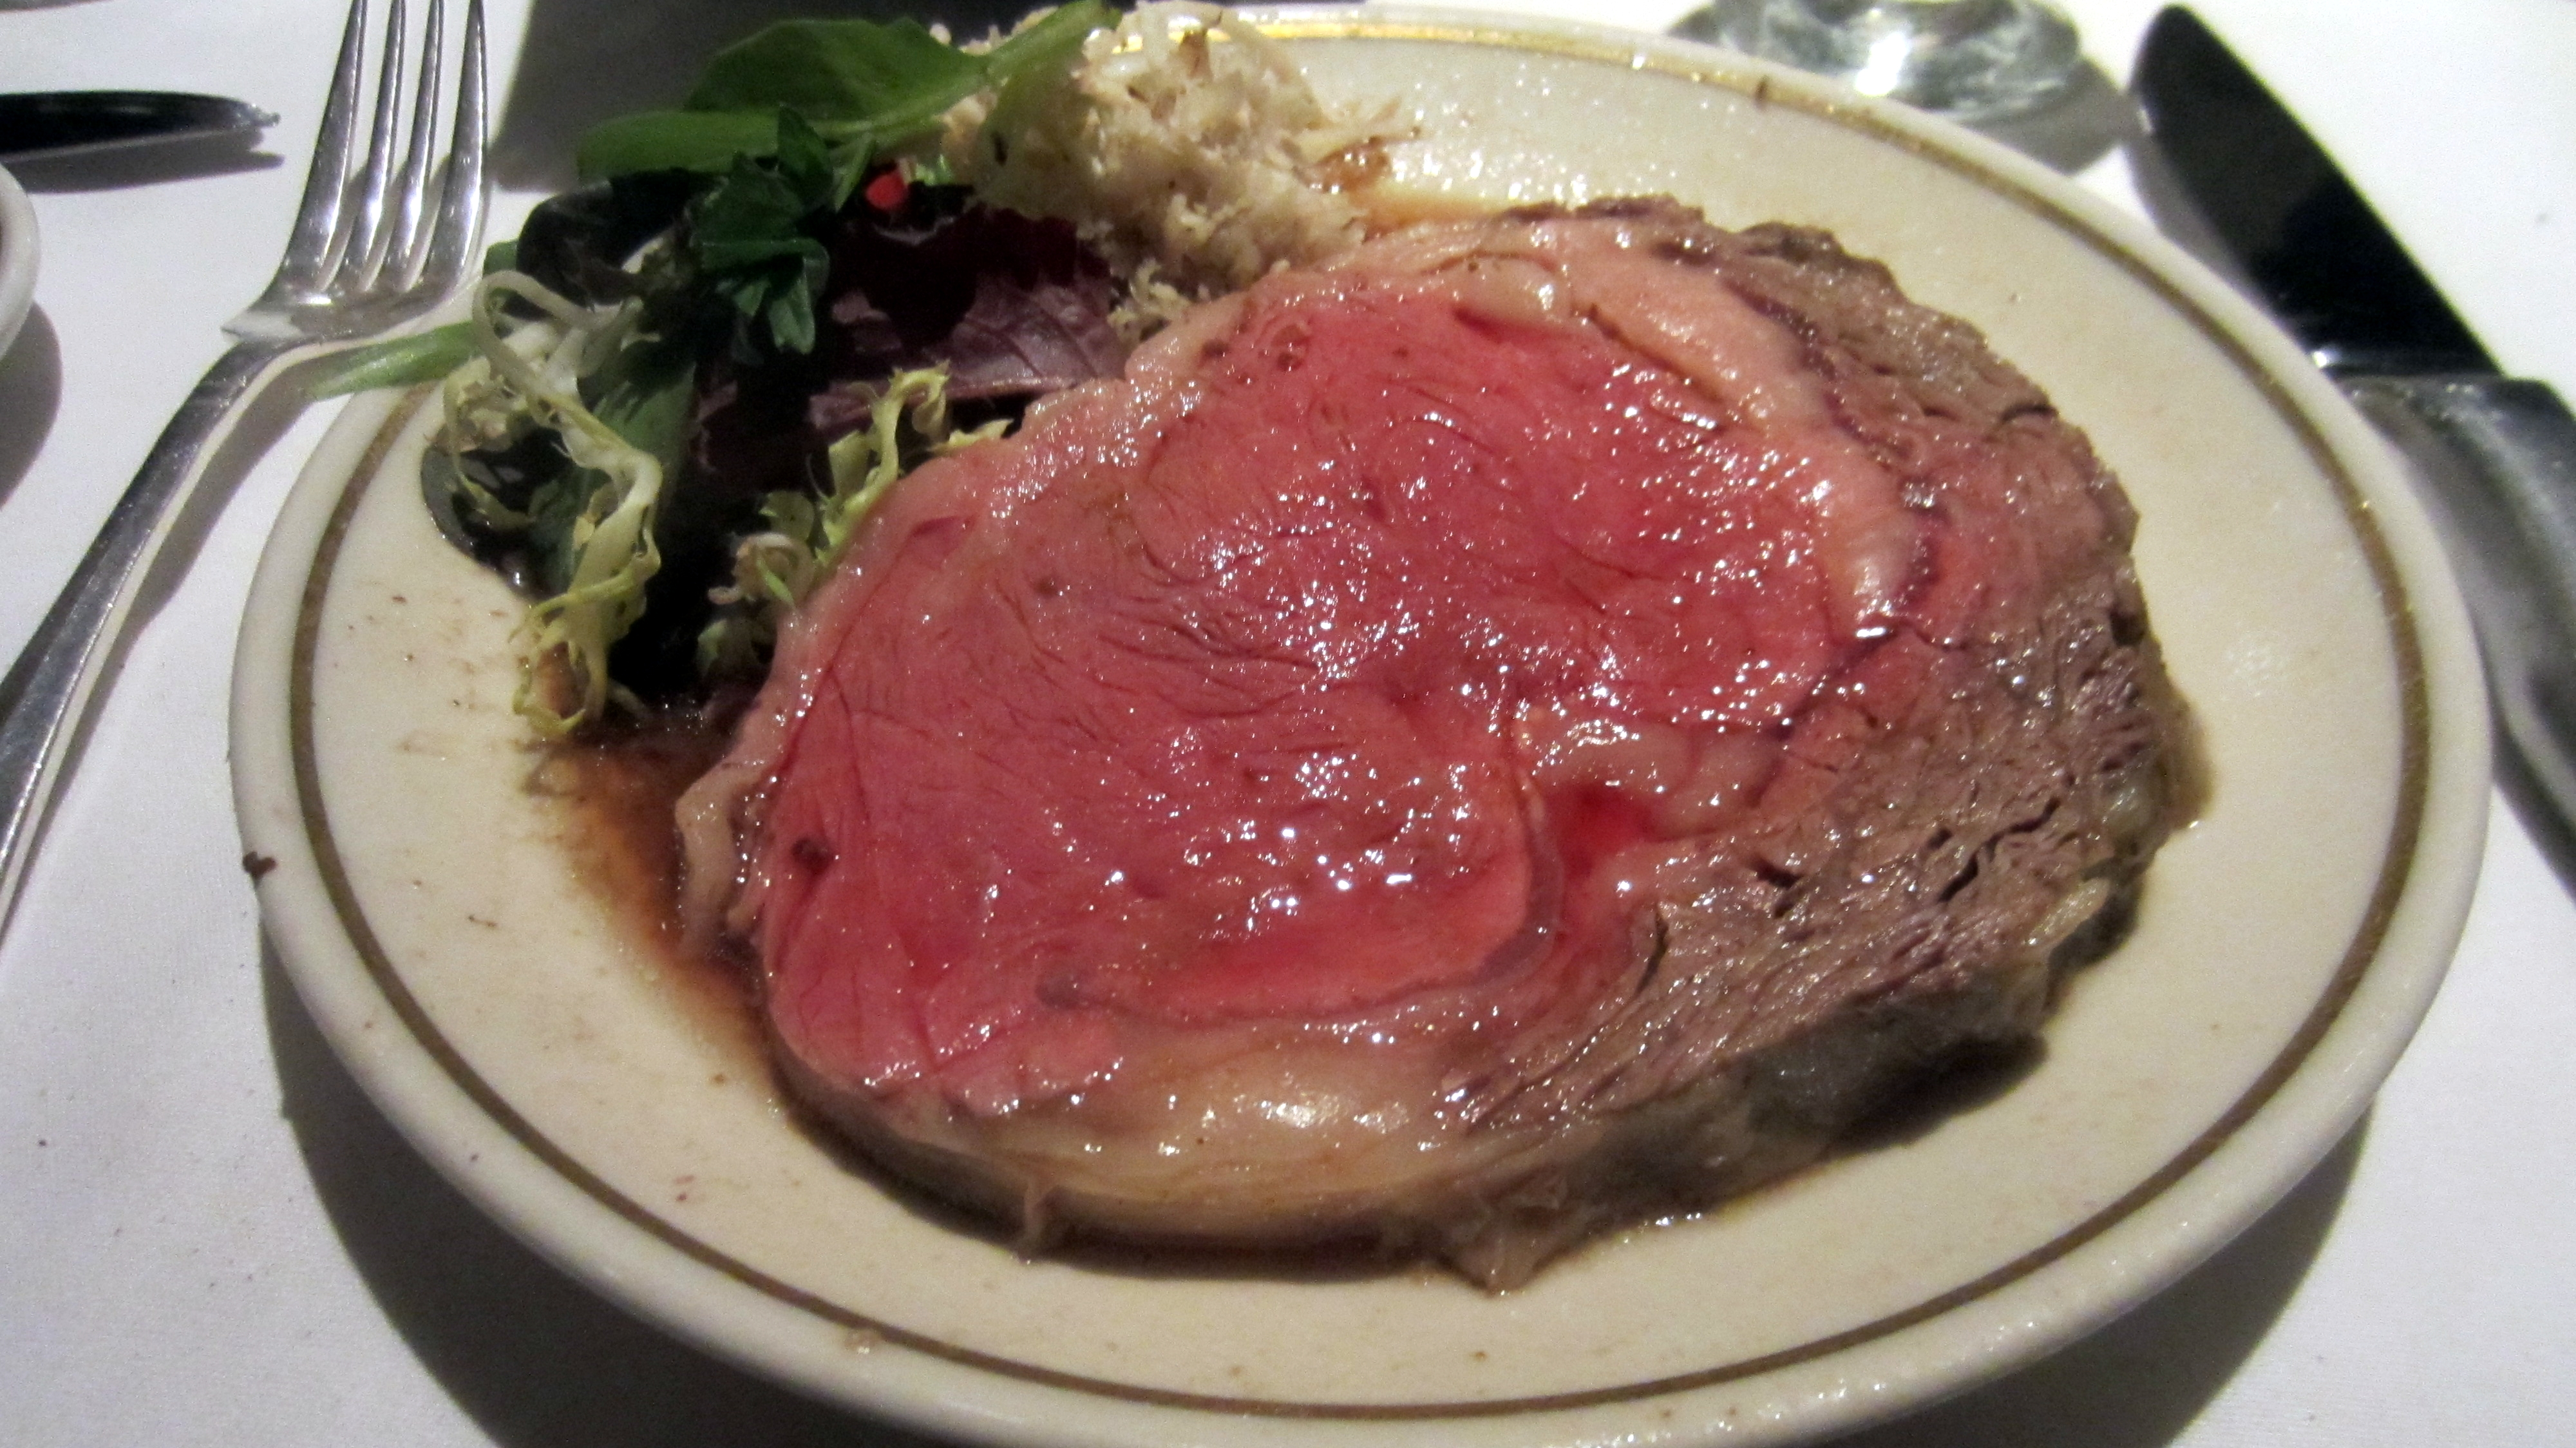 REVIEW: The Prime Rib – A Restaurant Week Experience ...